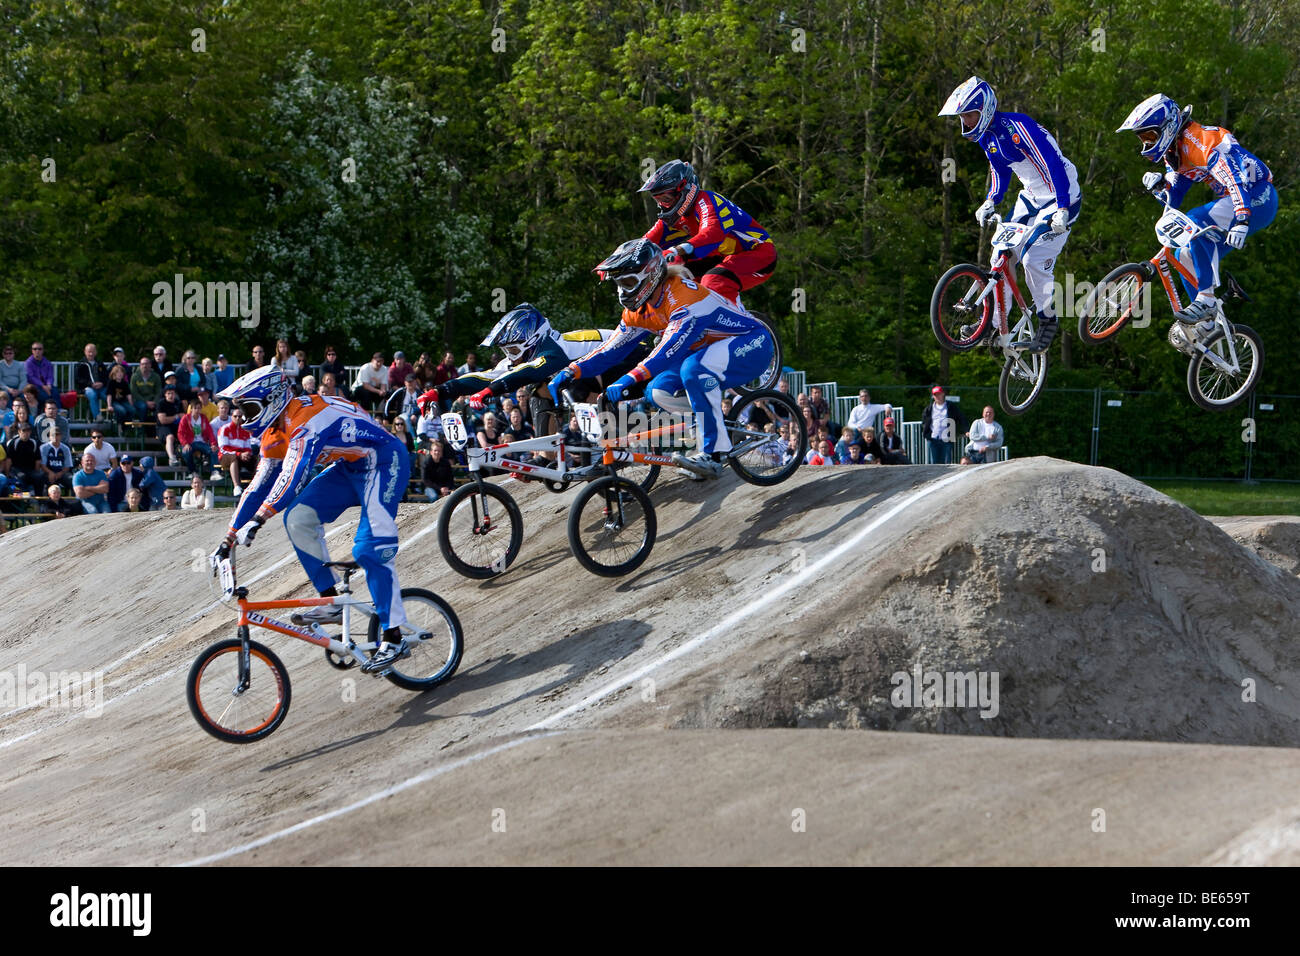 Six racing competitors at the BMX Supercross World Cup, Copenhagen, Denmark Stock Photo